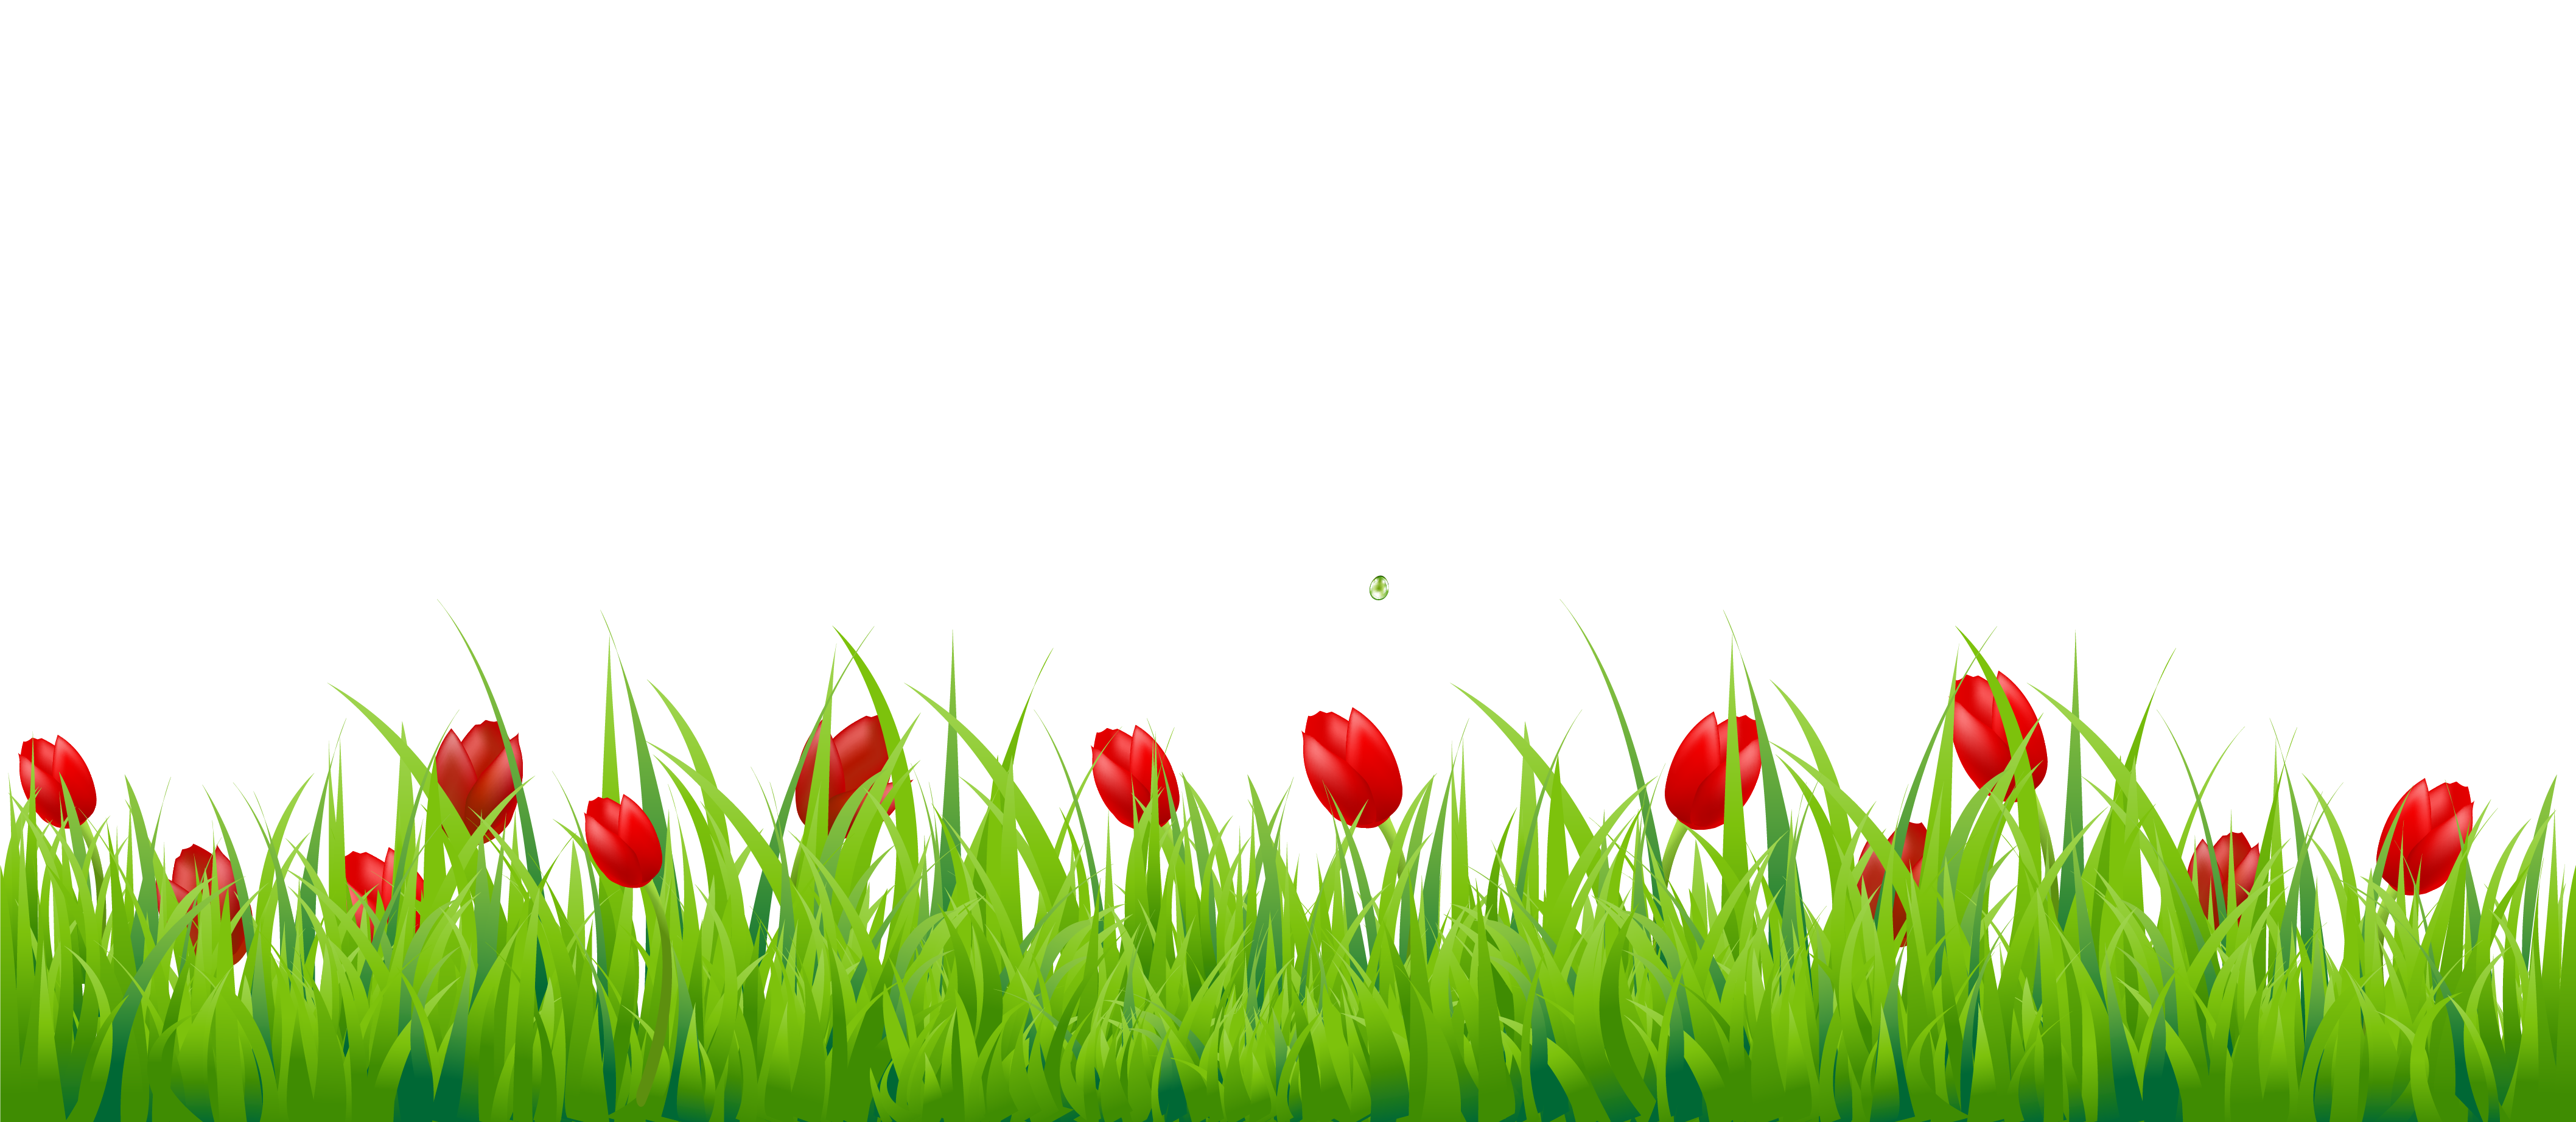 Rose png transparent image. Clipart grass tulip